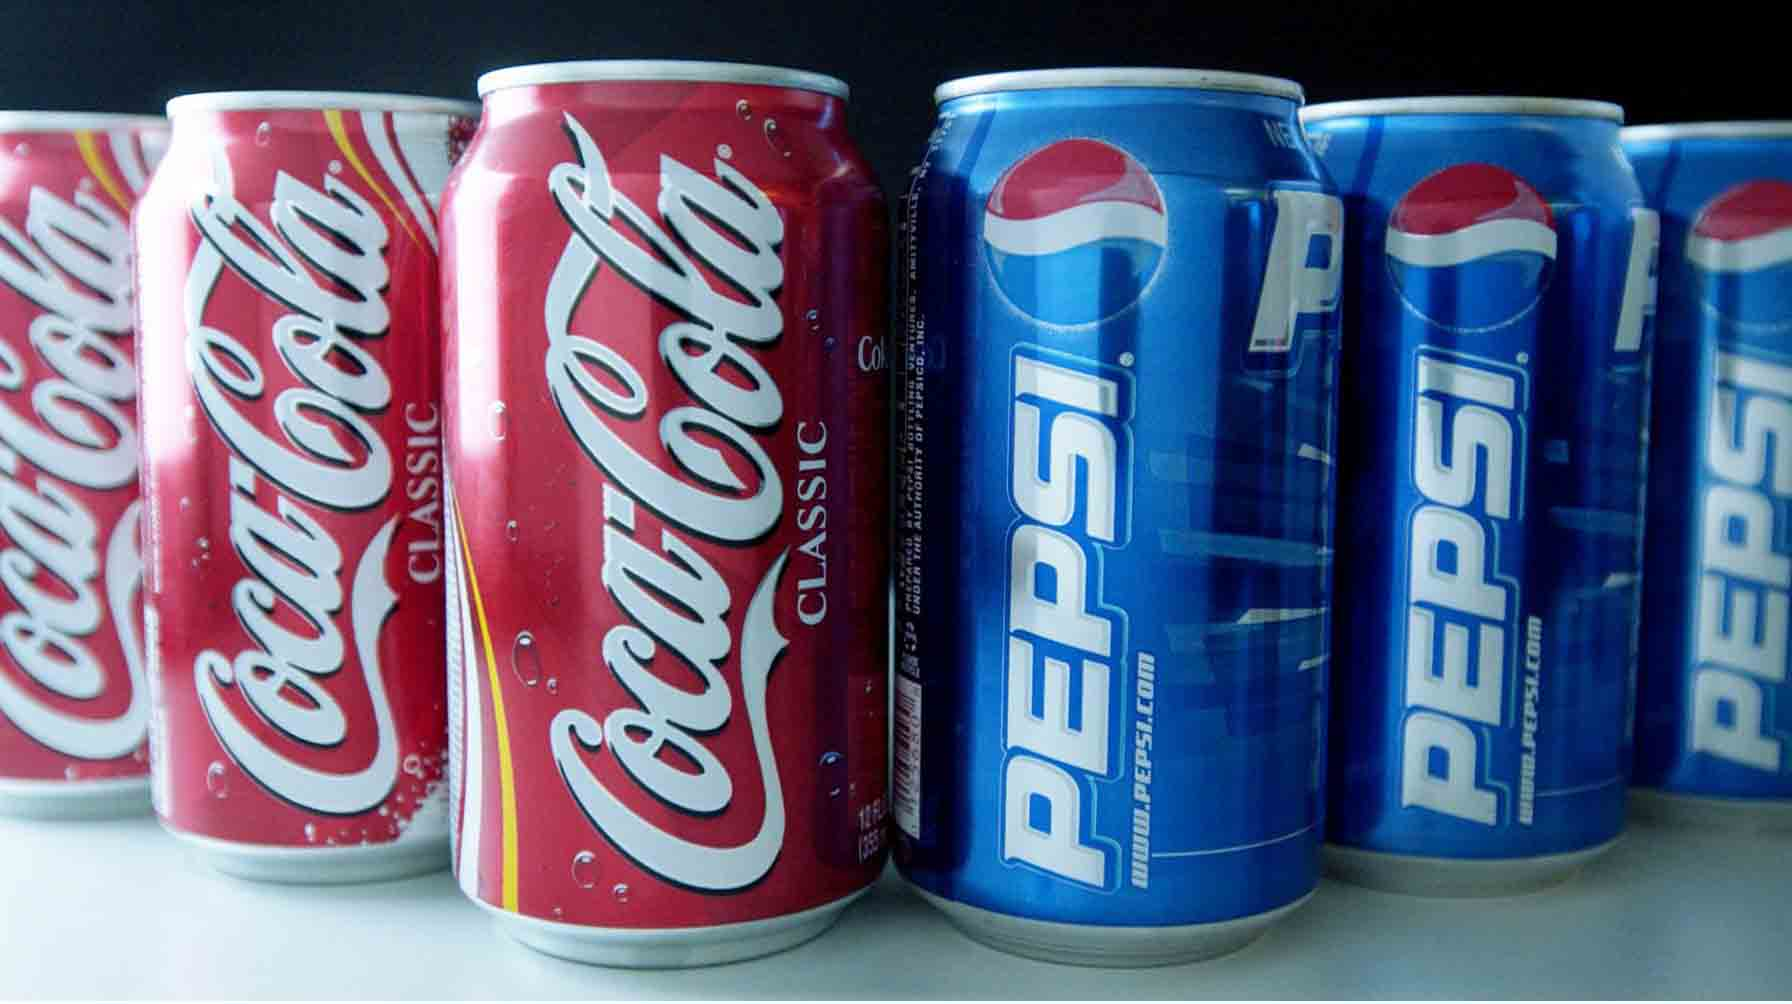 ​Tamil Nadu boycotts Pepsi and Coke over jalikattu protest